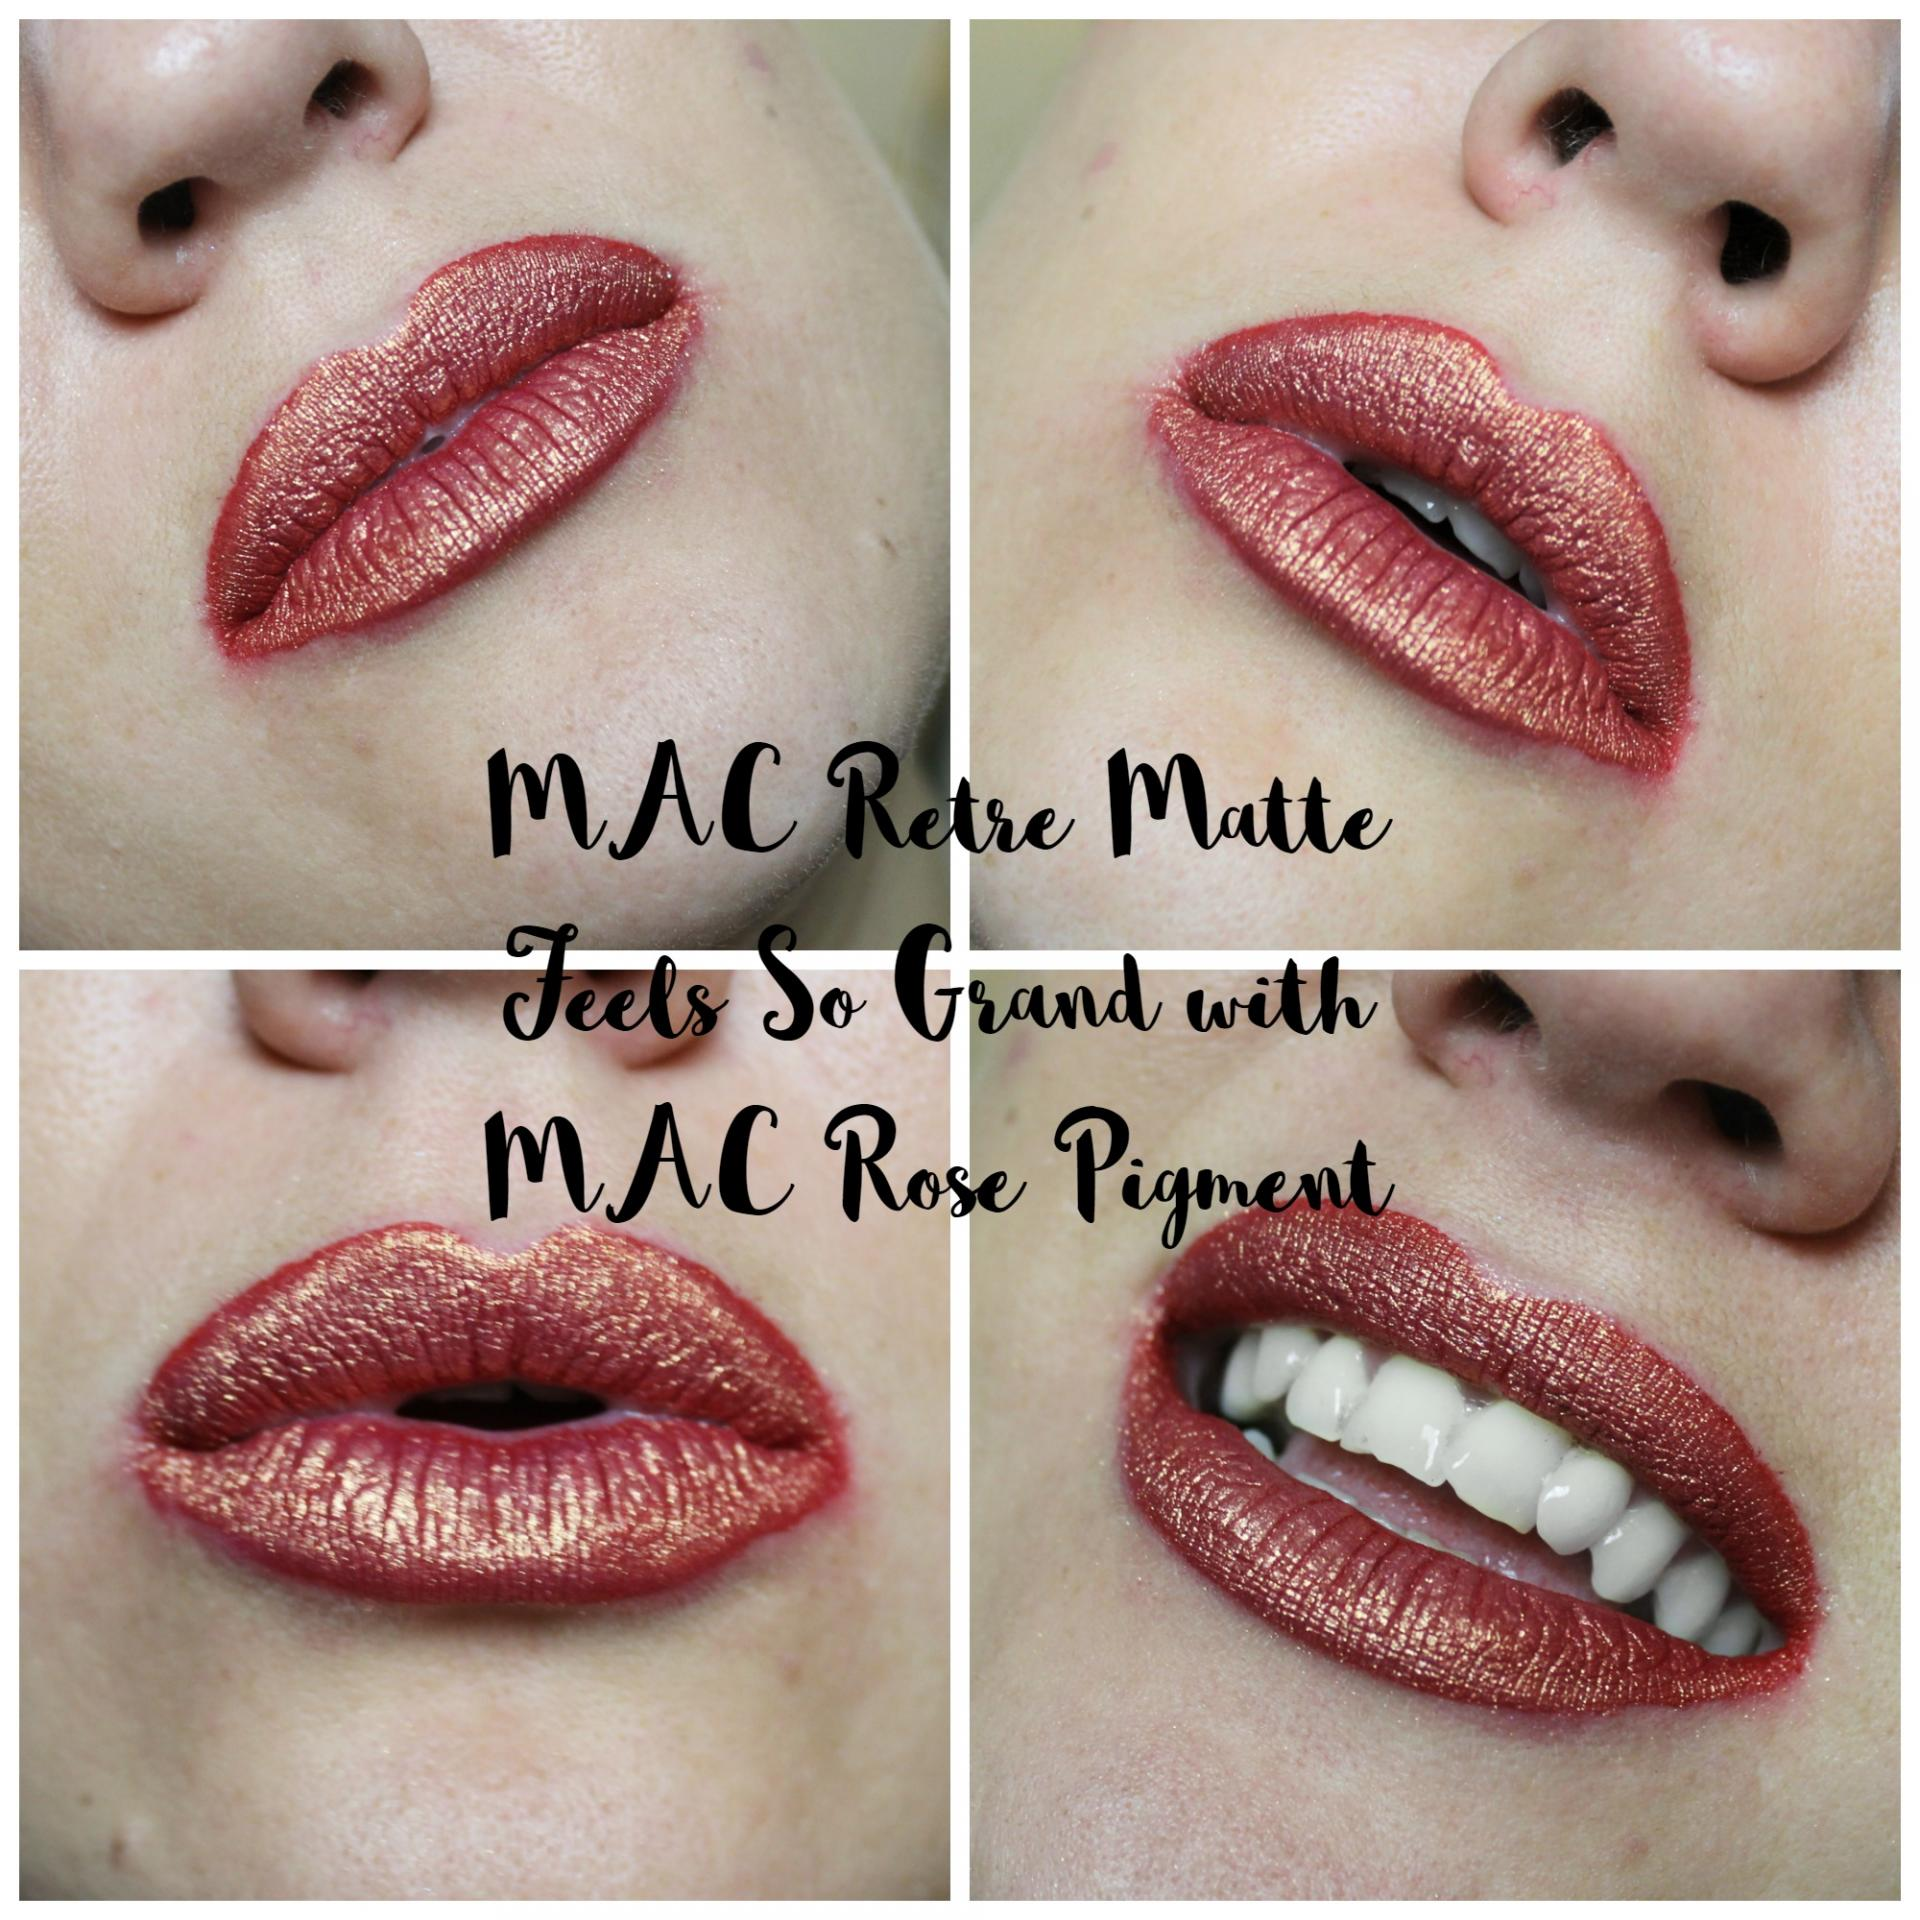 The Festive Red Lip MAC REtro Matte Feels So Grand Rose Pigment